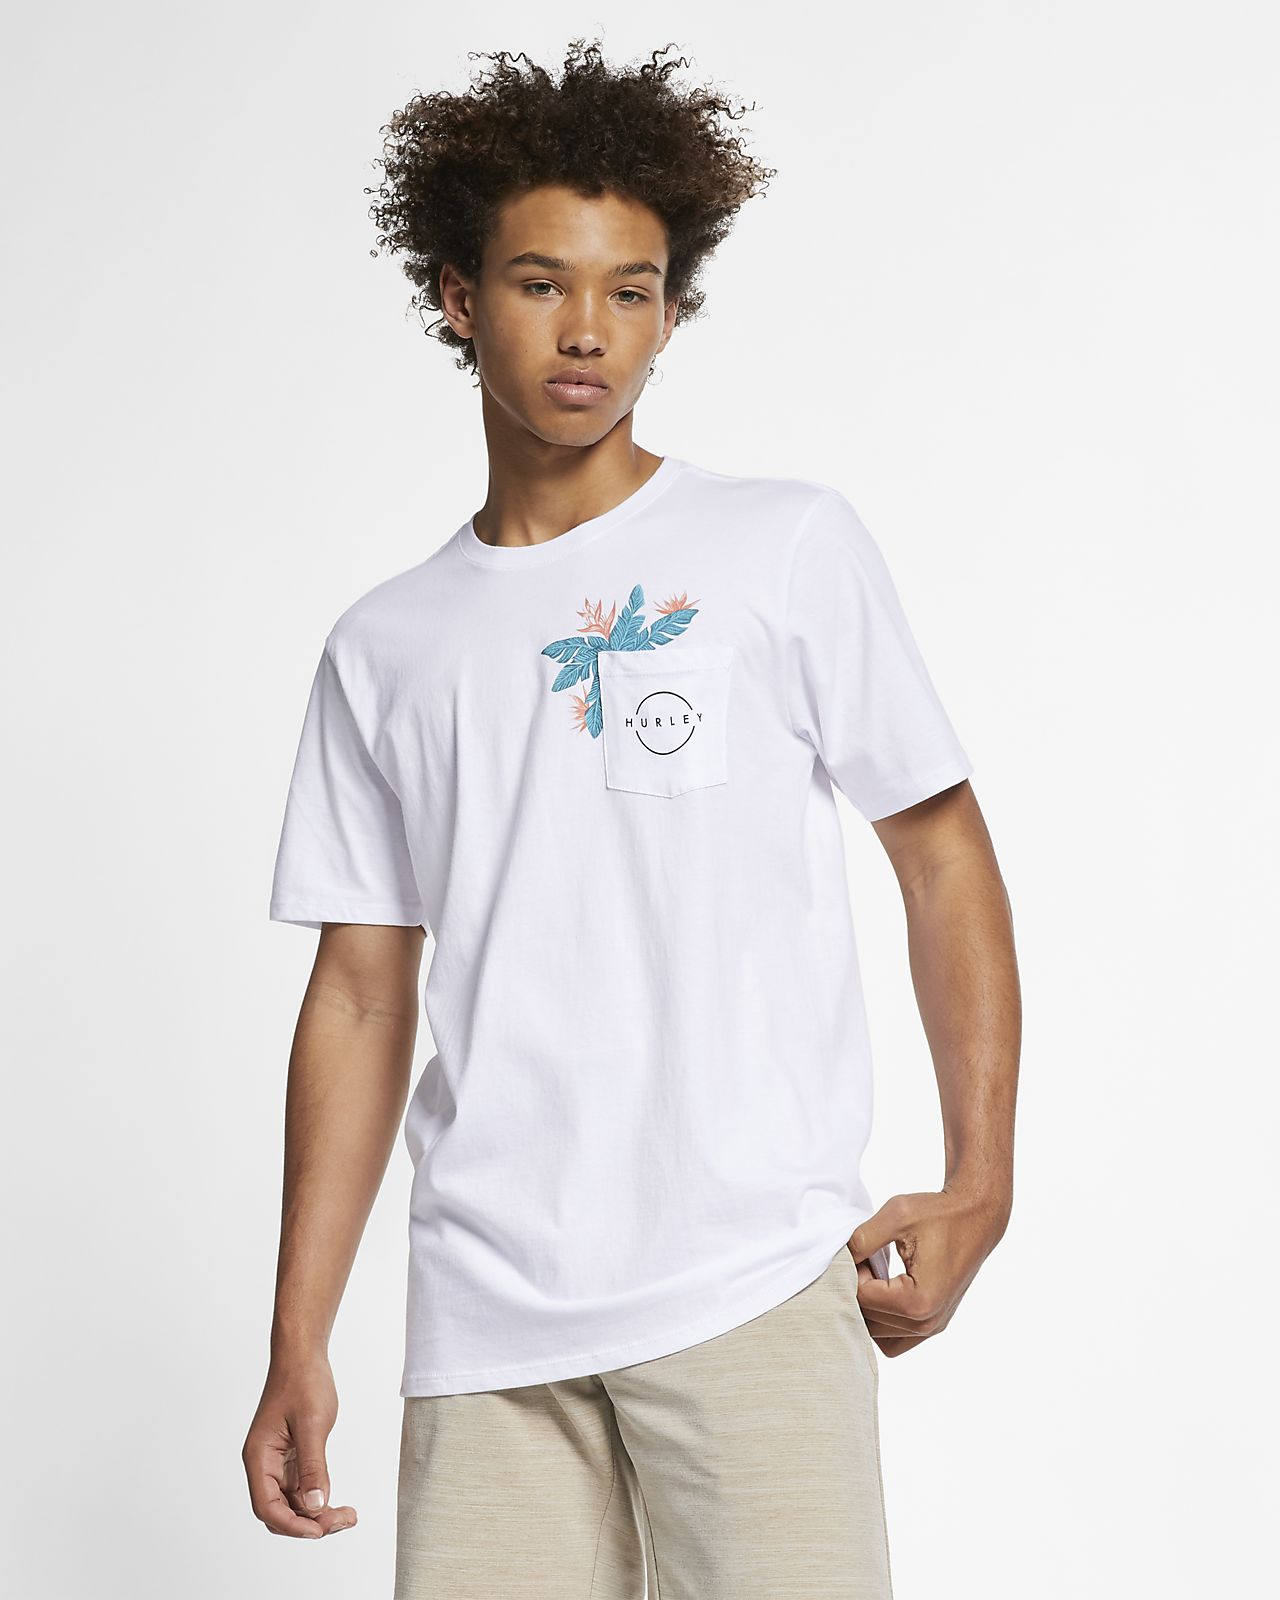 4988956d Hurley Hanoi Men's Pocket T-Shirt. Nike.com